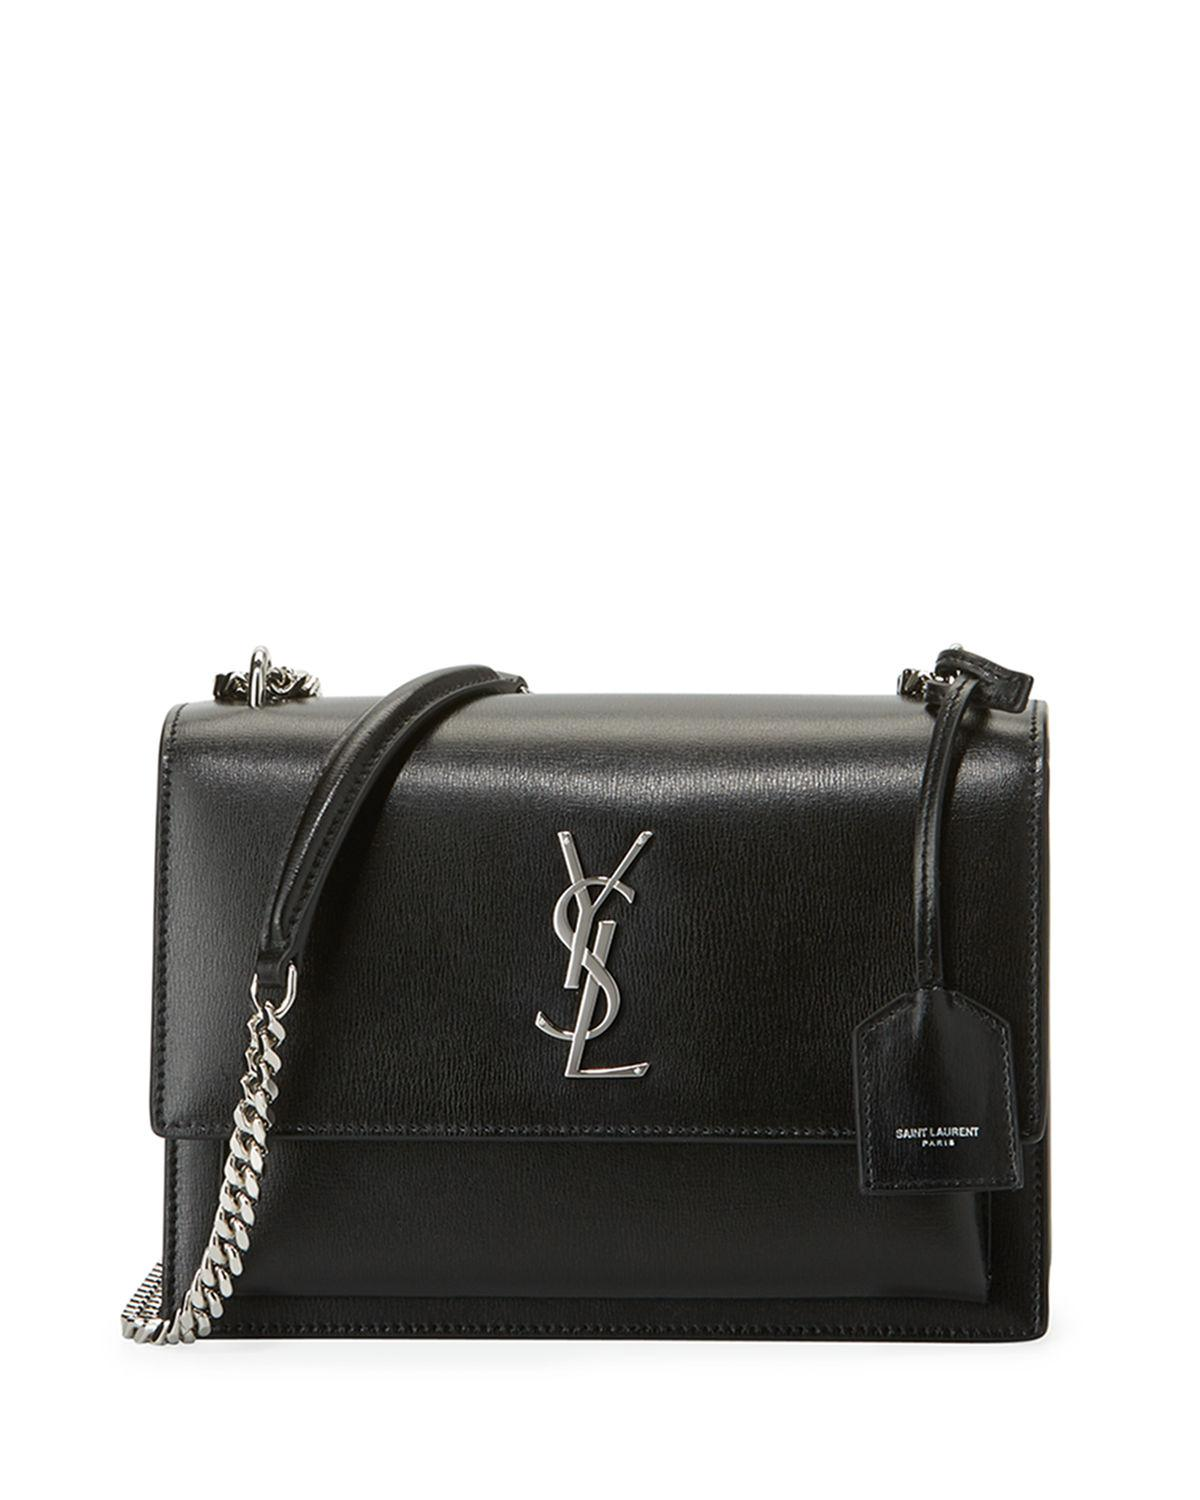 Saint Laurent - Black Sunset Medium Monogram Ysl Crossbody Bag - Lyst. View  fullscreen 493e41e0b47d8